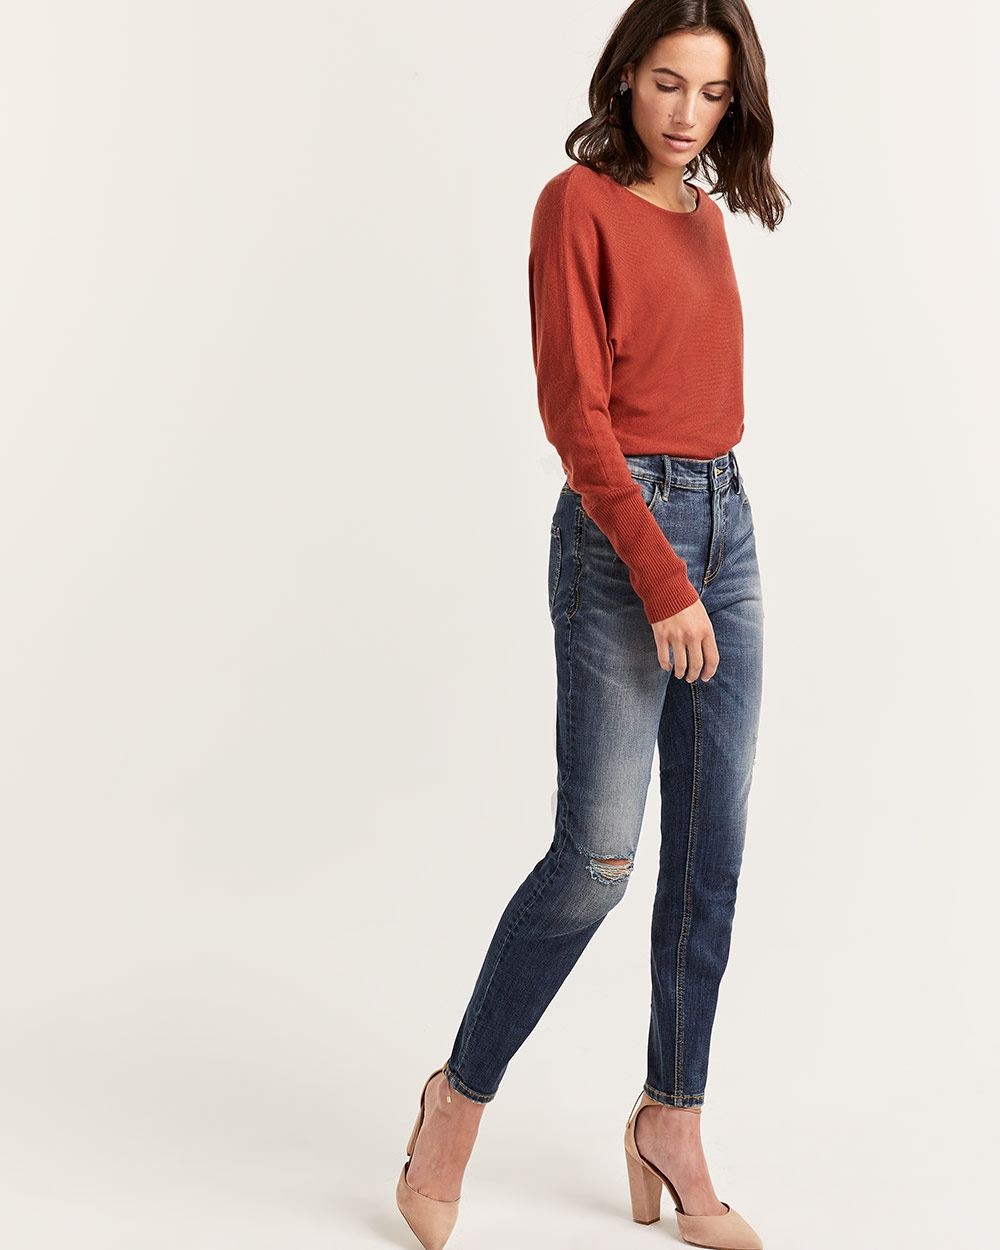 High Rise Skinny Jeans with Rips - Tall